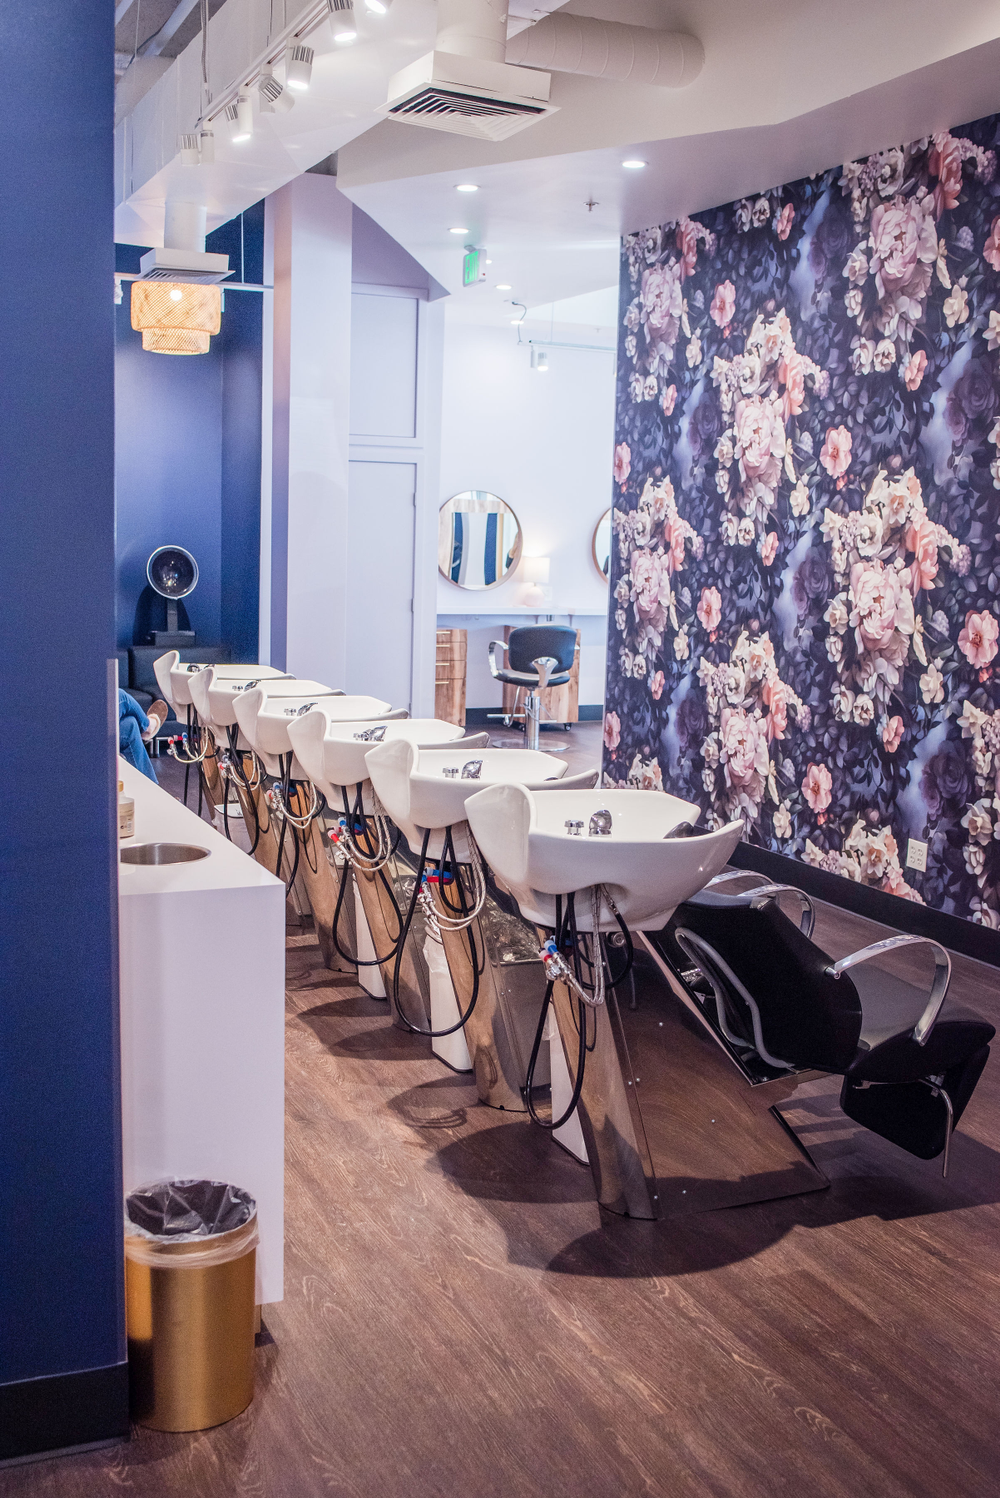 Colorful floral wallpaper and deep blue walls bring a smile to the faces of guests in the shampoo room at Salon Cosabella in Broomfield, Colorado.